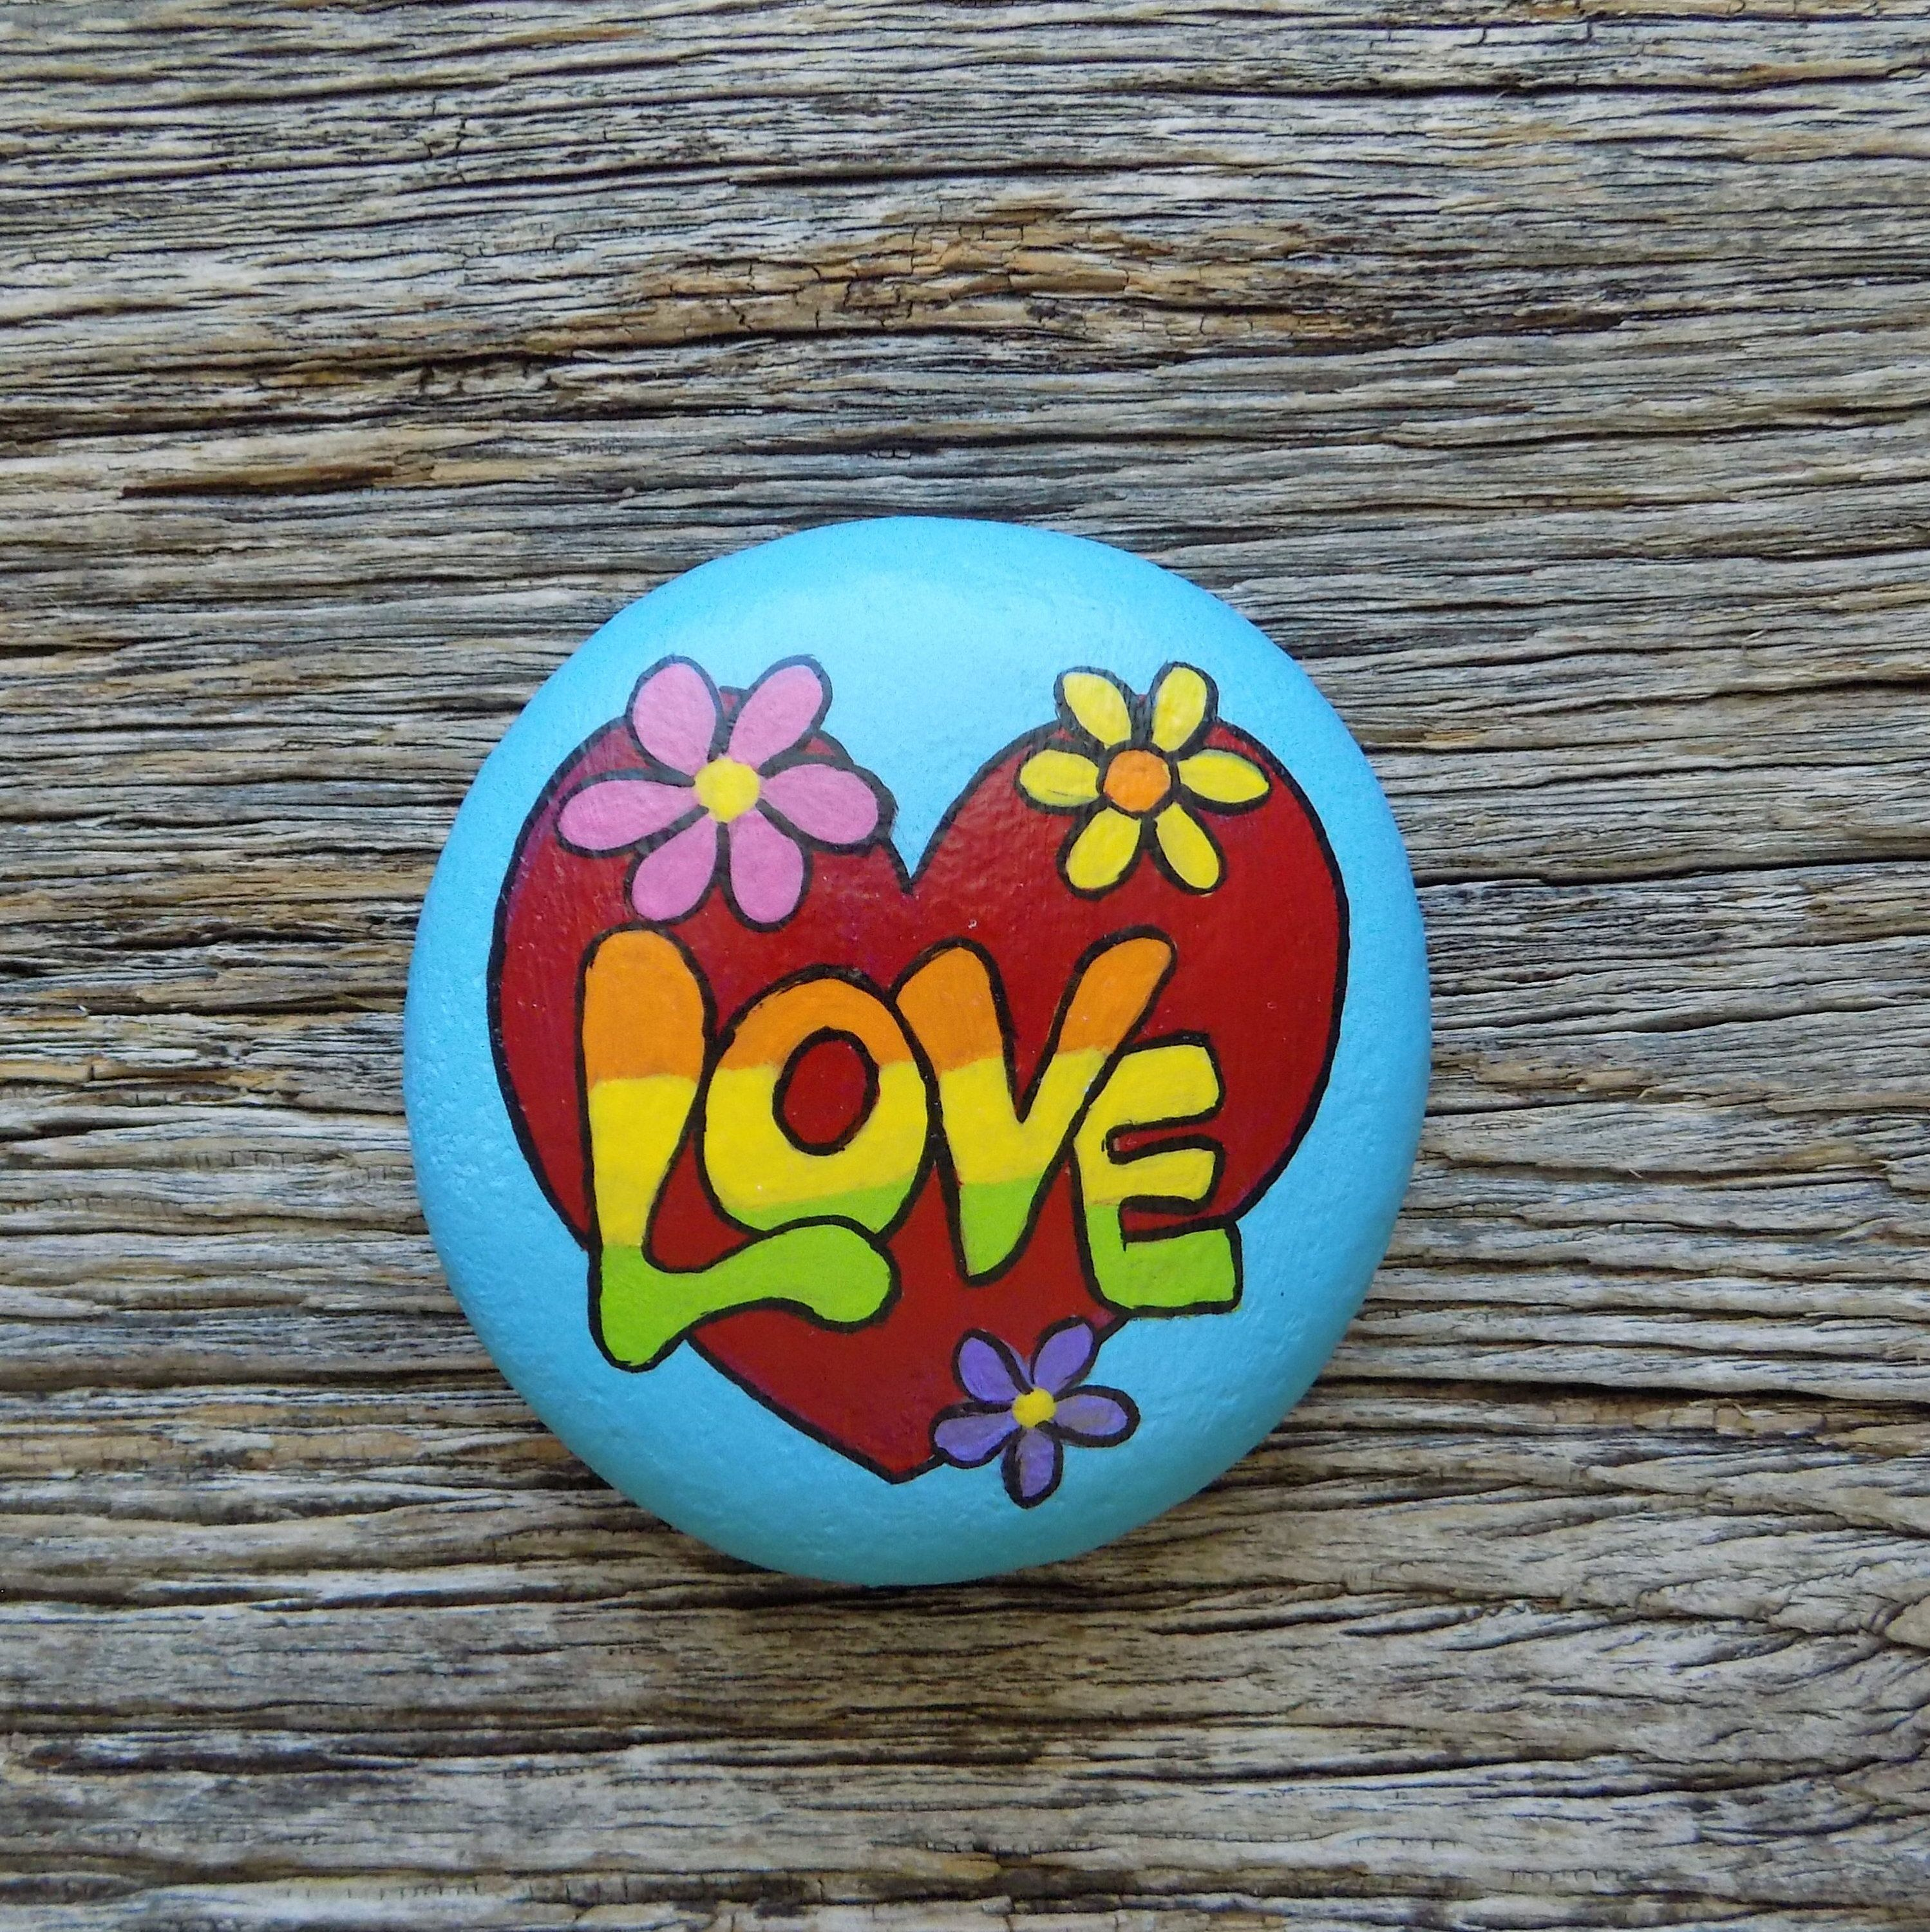 Love Heart Painted Rock Decorative Accent Stone Paperweight In